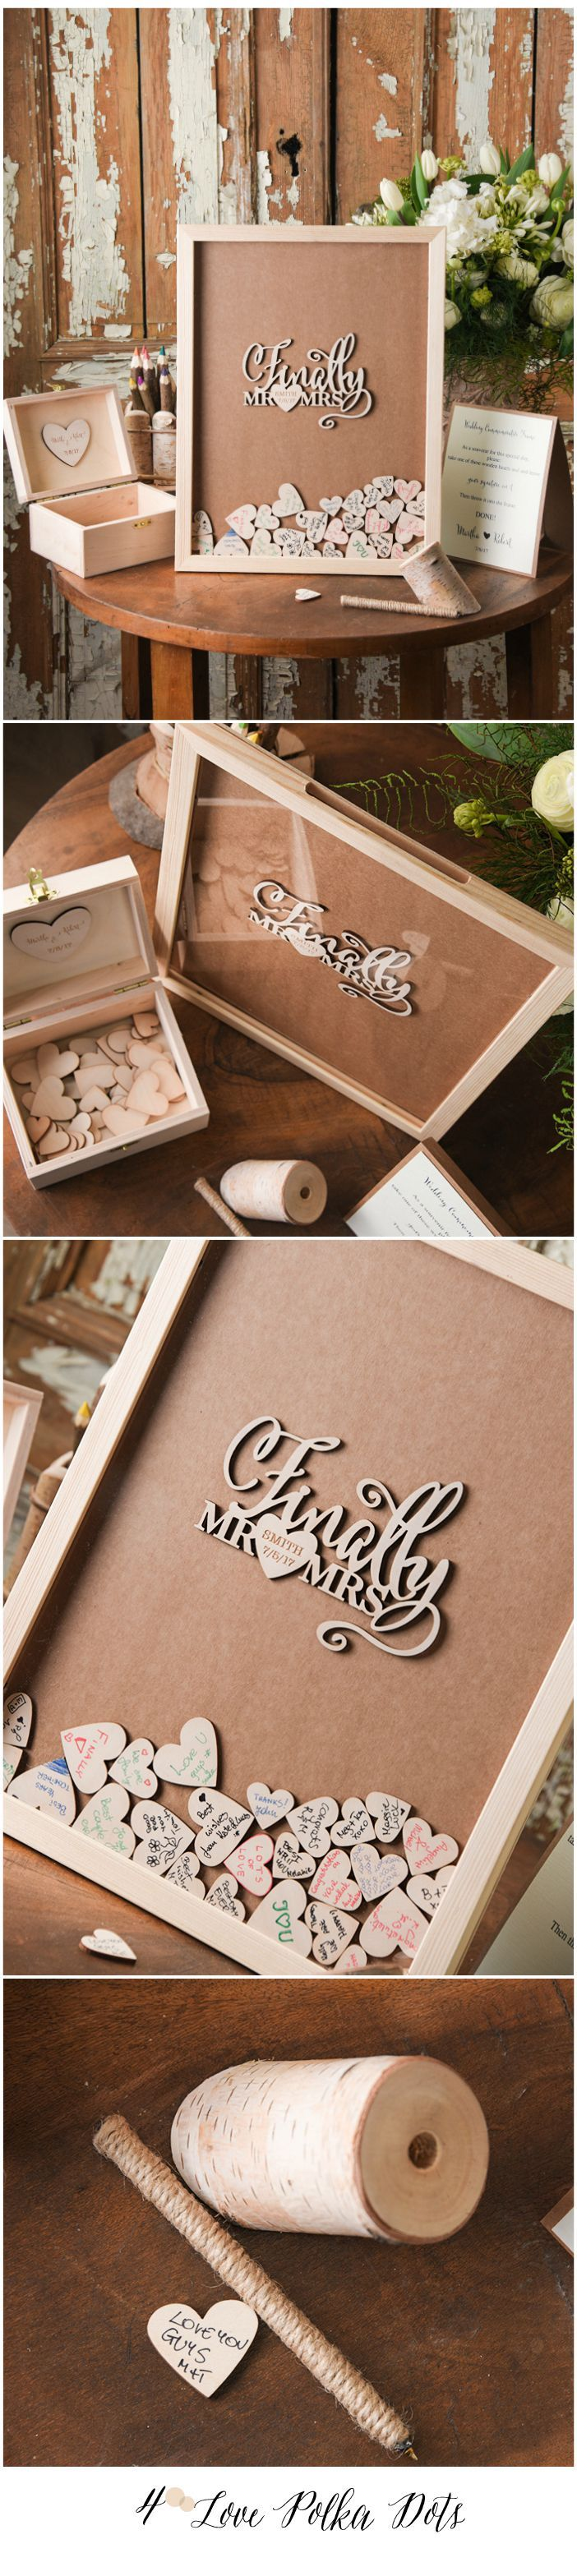 Finally Mr & Mrs Wedding Guest Book